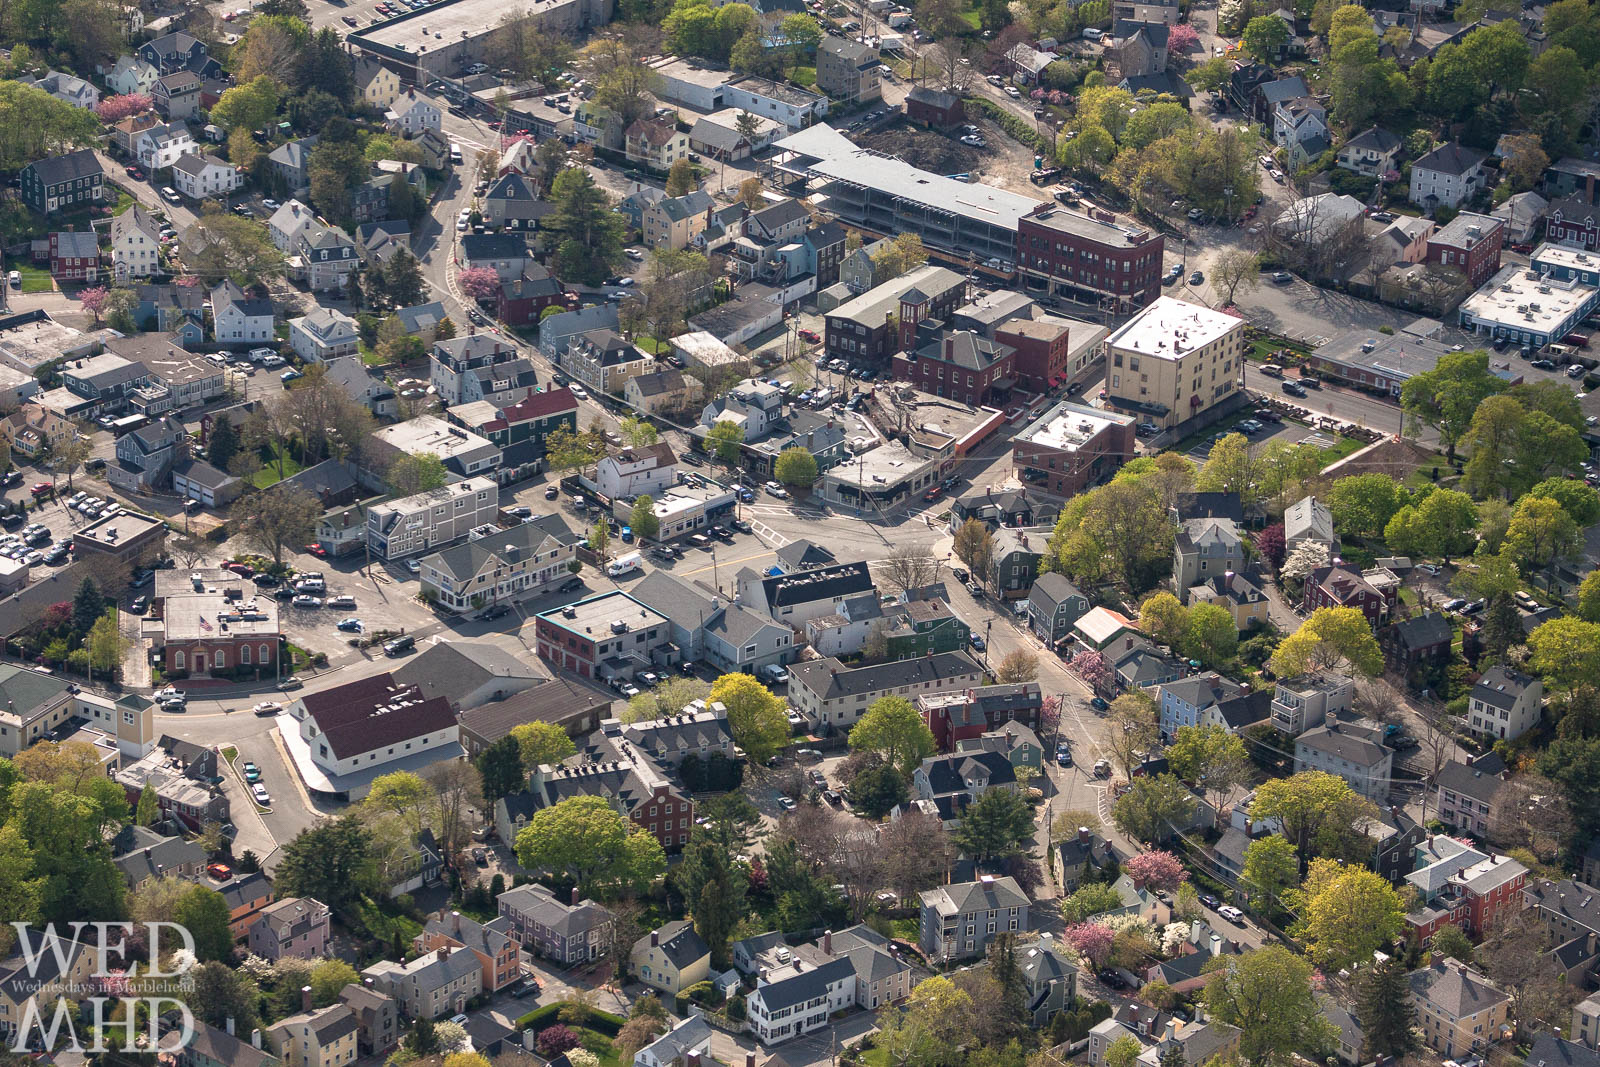 A view of the Five Corners intersection in Marblehead from a plane overhead